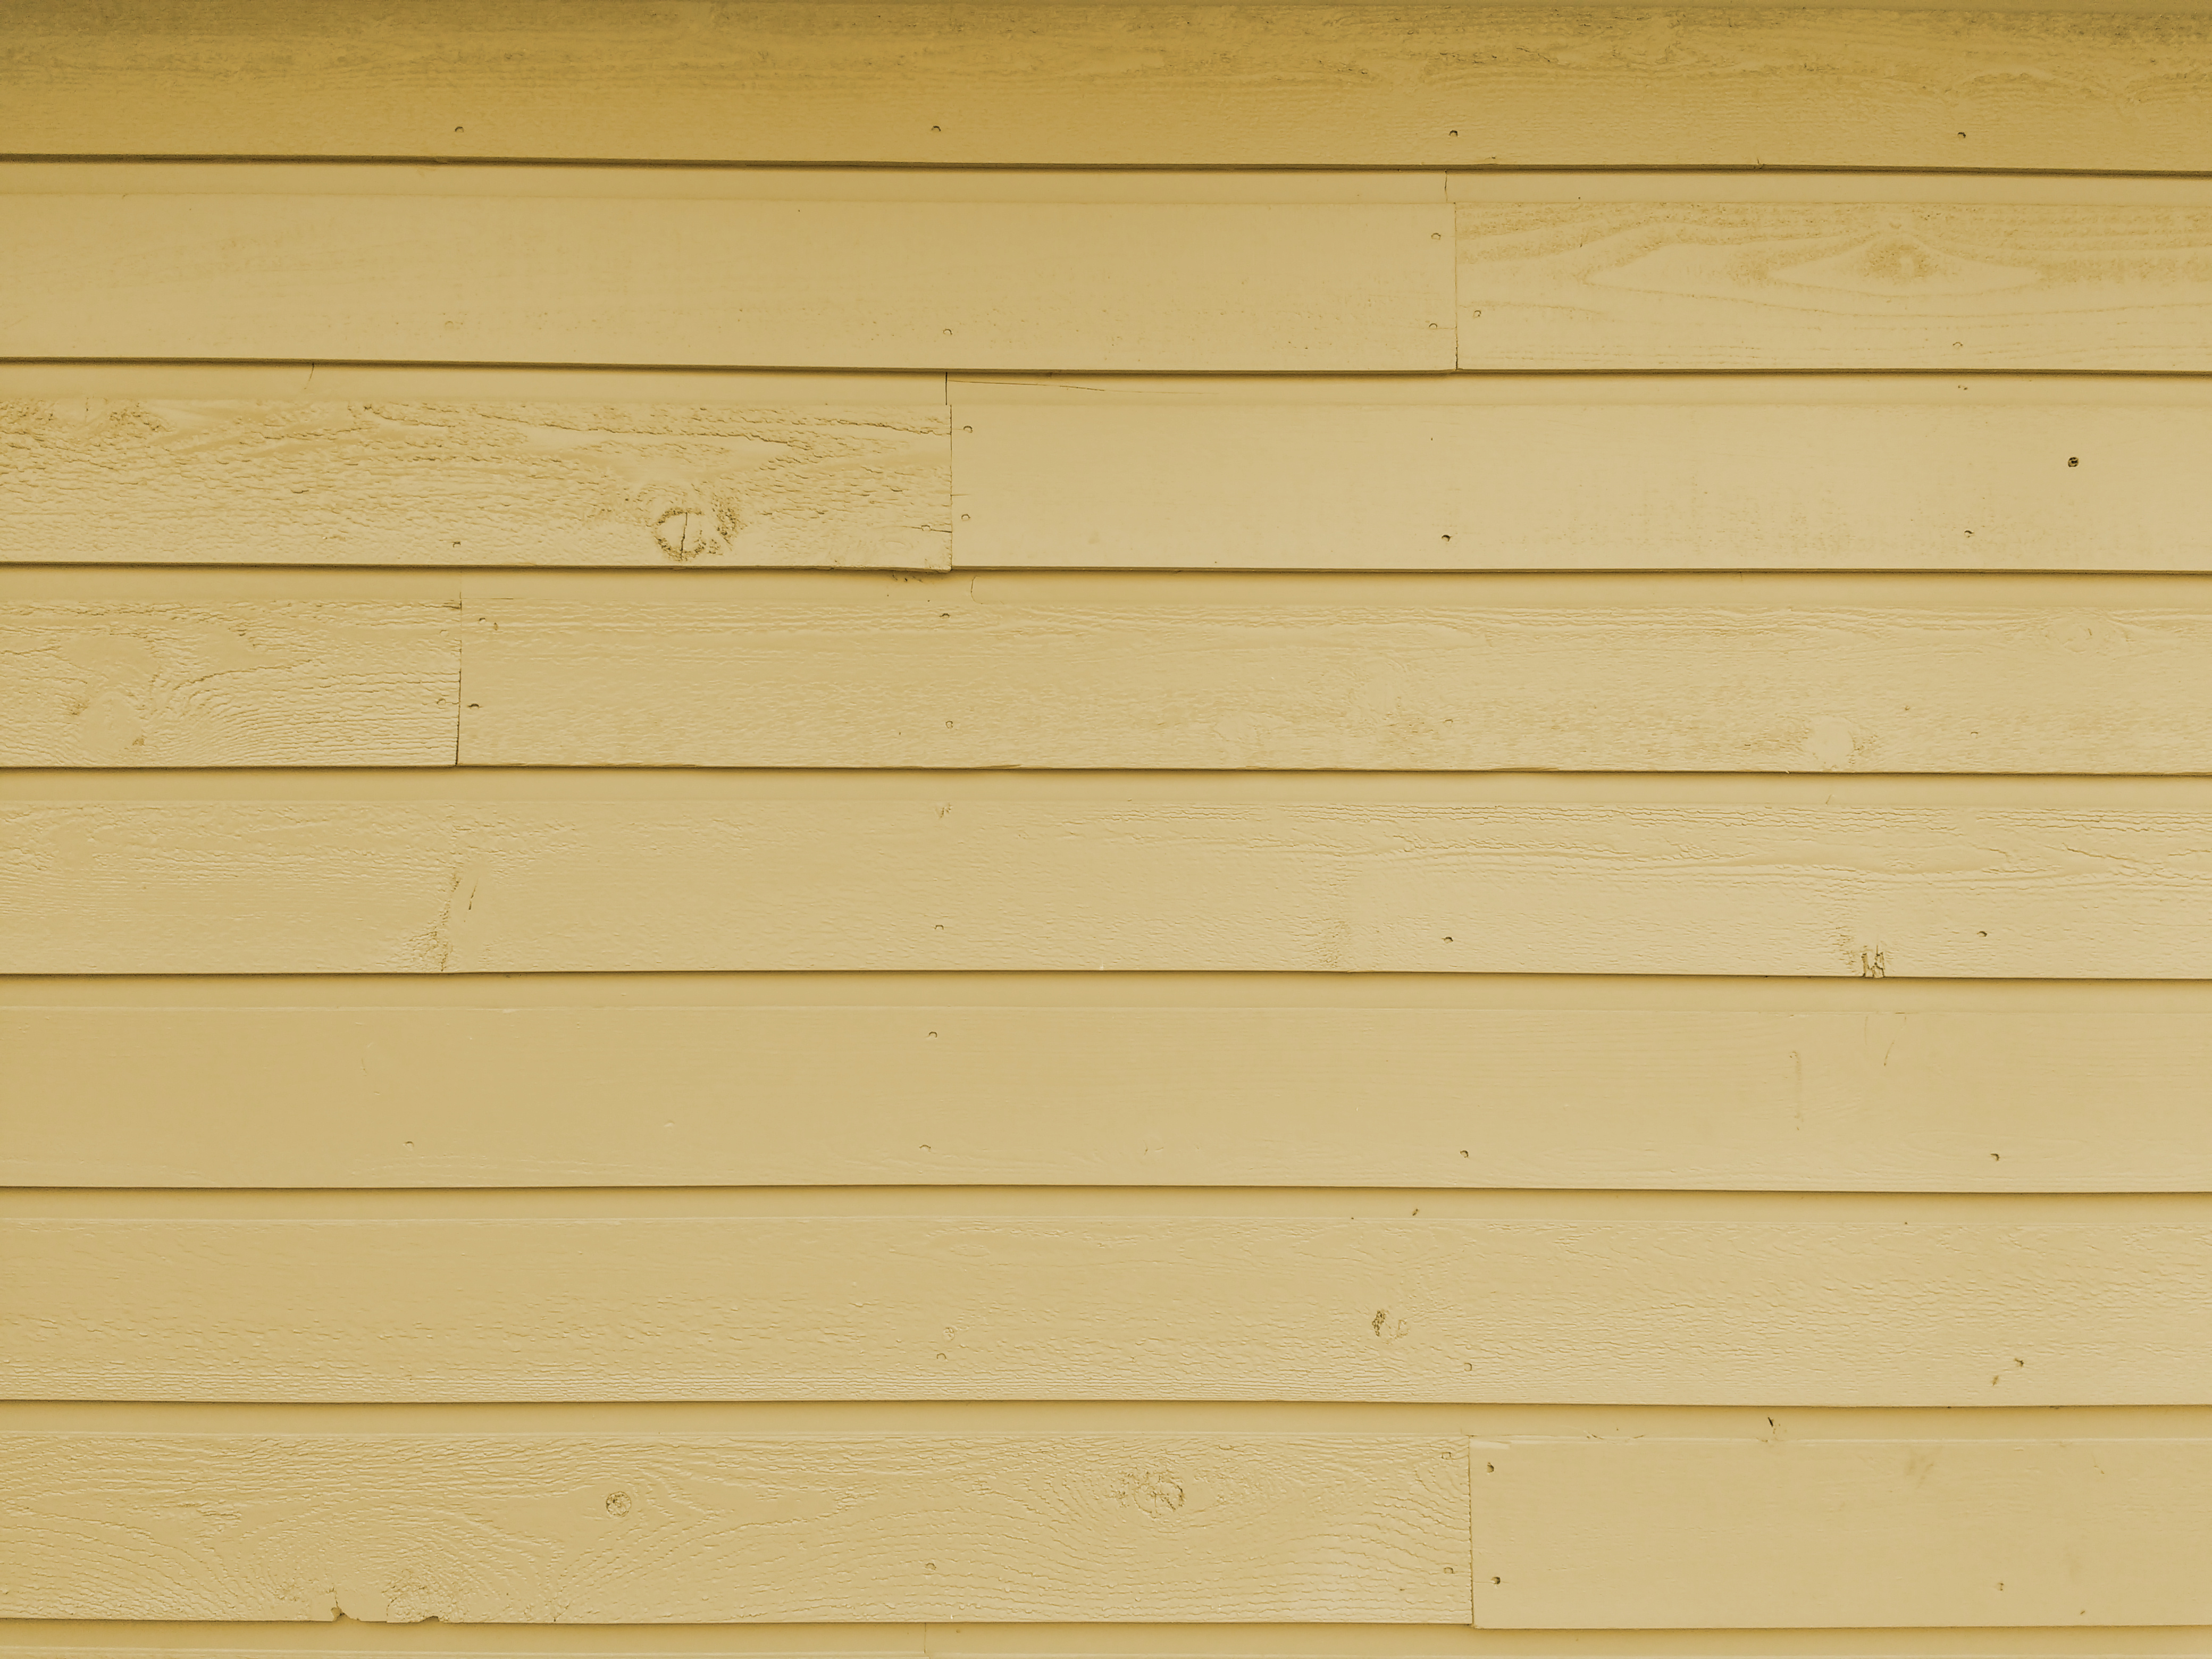 Yellow Drop Channel Wood Siding Texture Picture Free